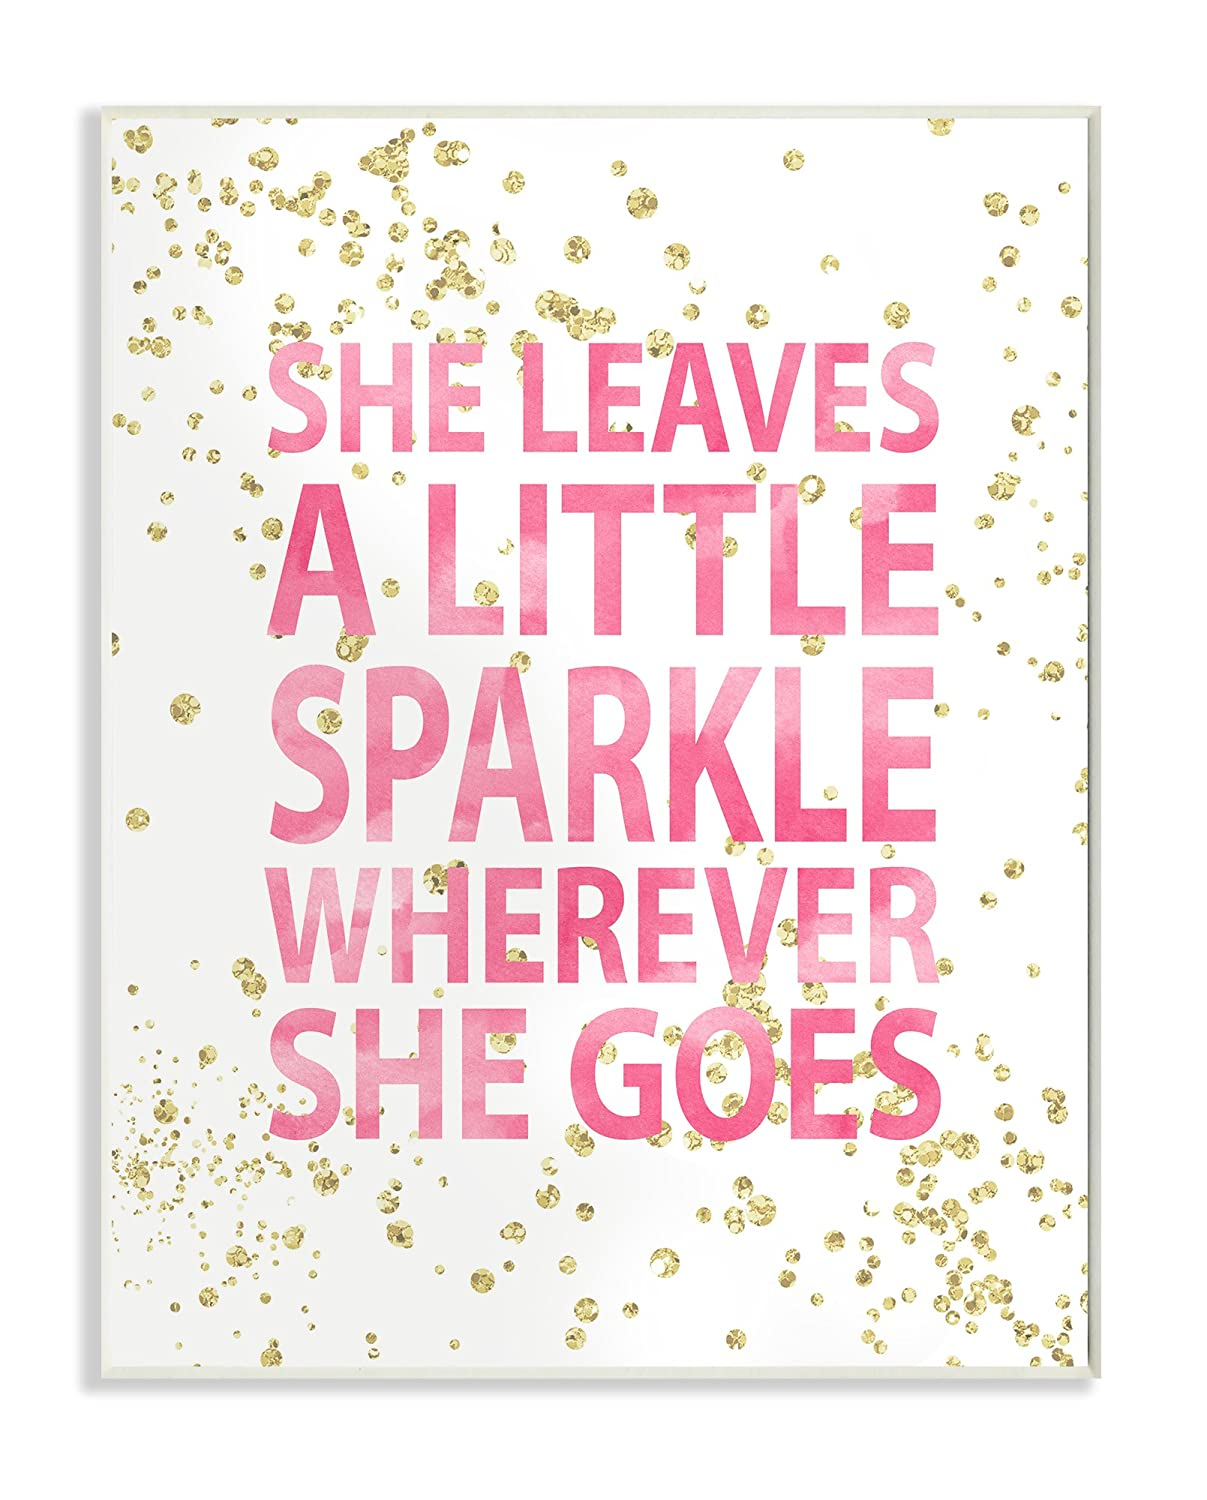 She leaves a little sparkle plaque wall nursery decor kids room art girls new ebay - Sparkle wall decor ...